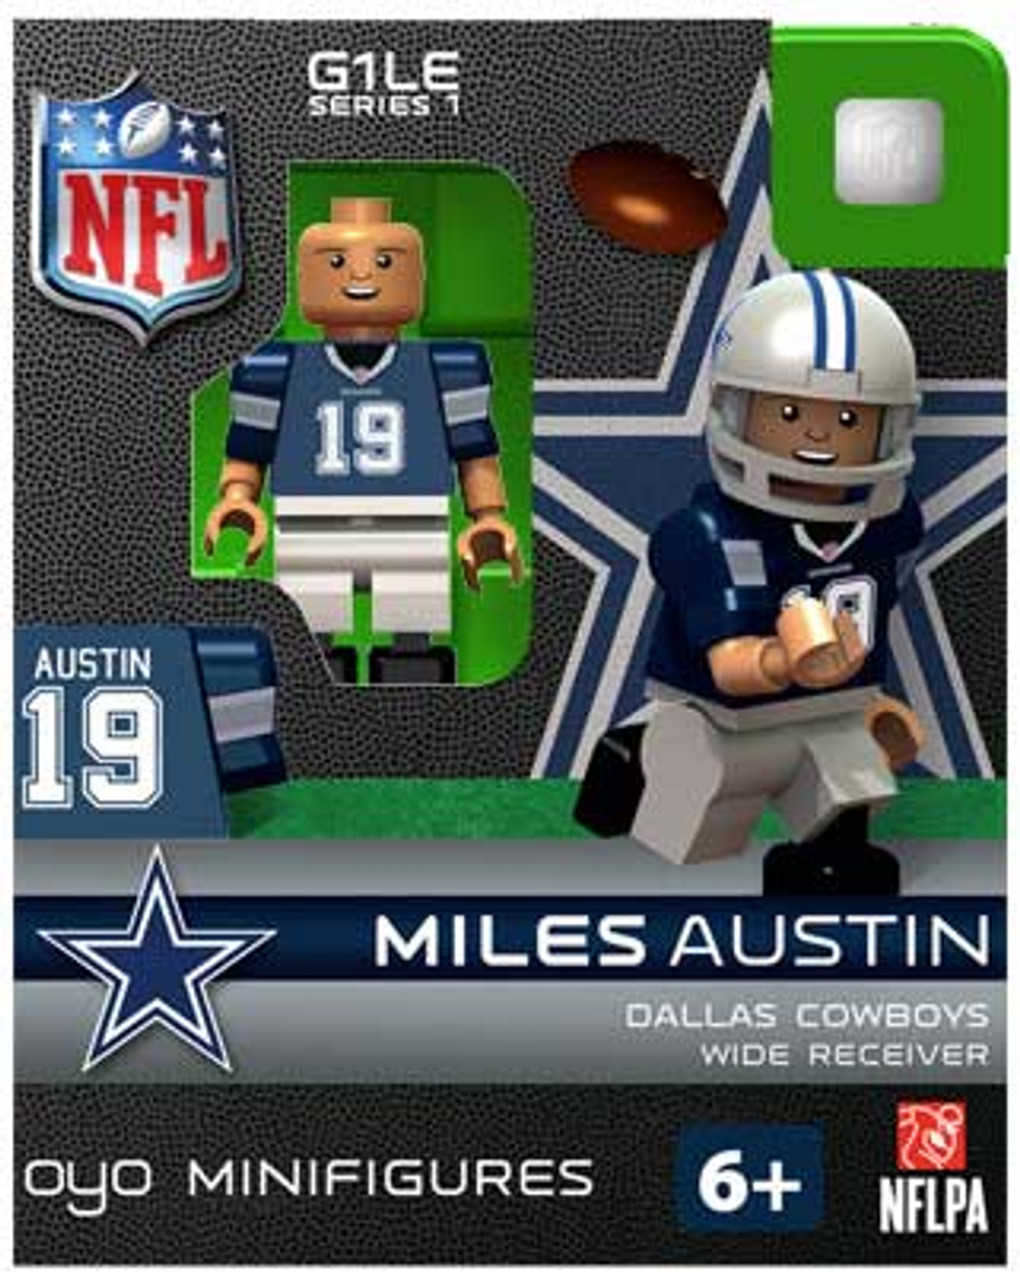 Dallas Cowboys NFL Generation 1 Series 1 Miles Austin Minifigure